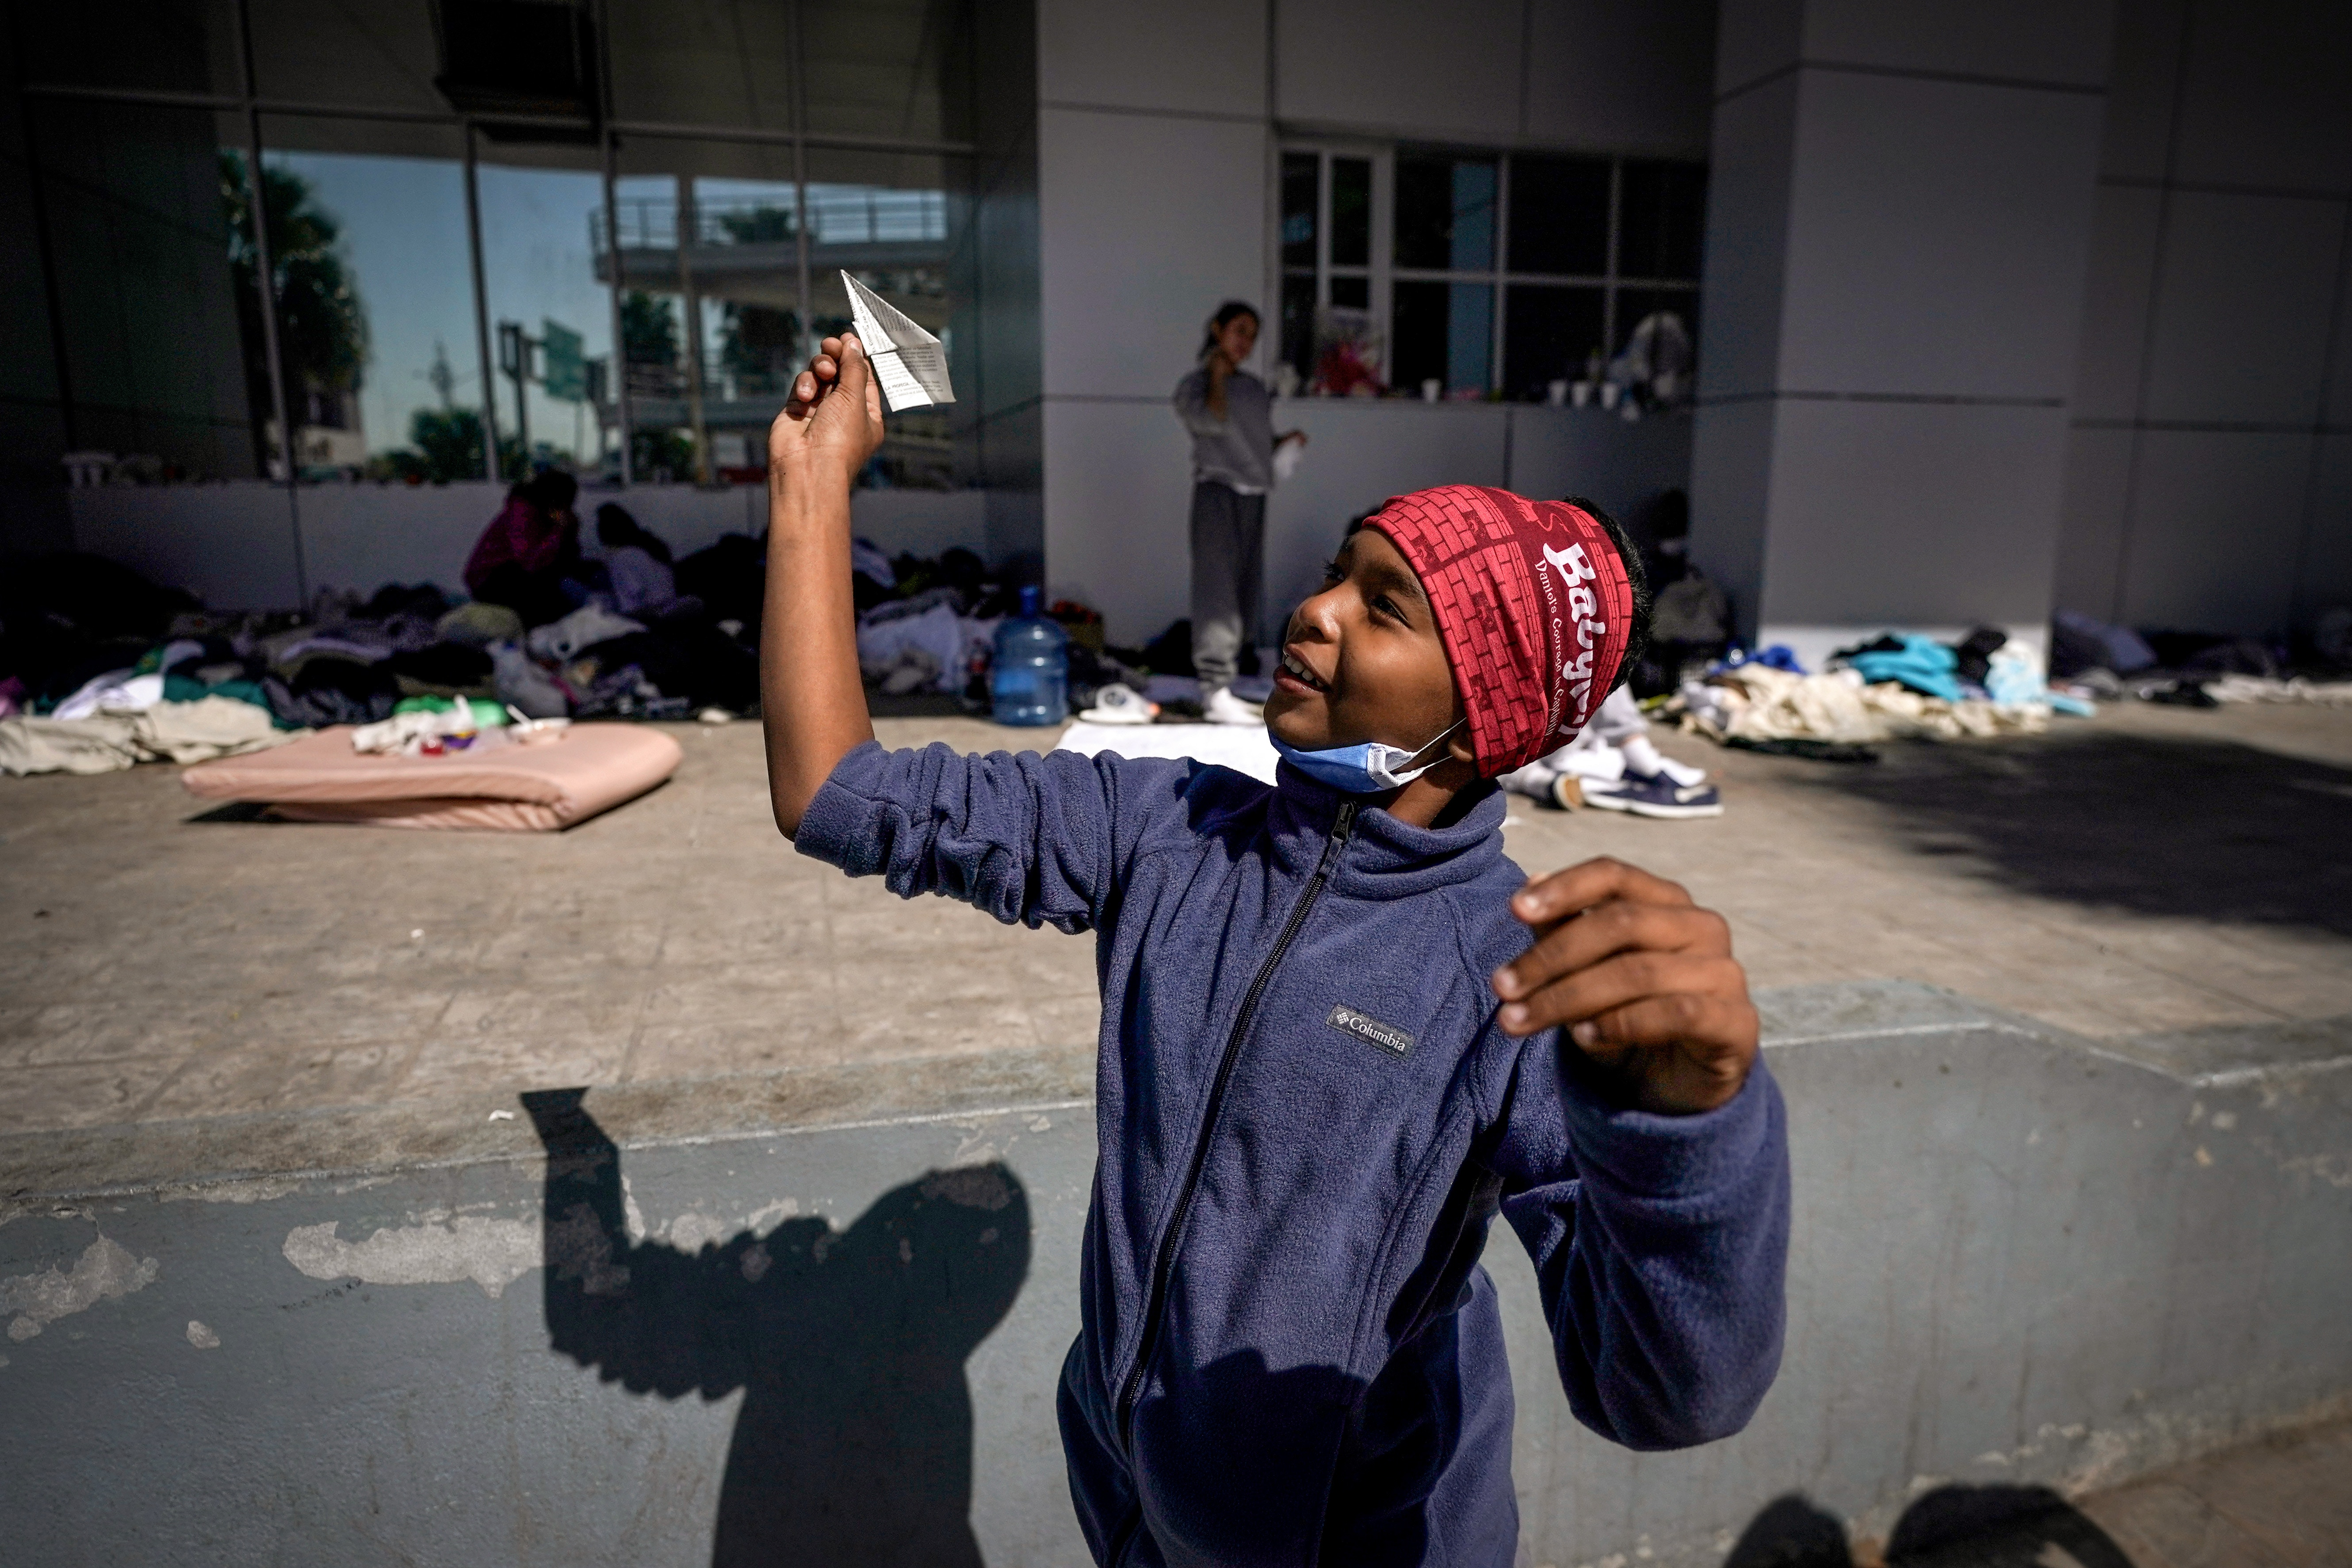 A migrant boy launches a paper airplane while playing with other migrant kids at a plaza near the McAllen-Hidalgo International Bridge point of entry into the United States after being caught trying to sneak into the U.S. and deported, Thursday, March 18, 2021, in Reynosa, Mexico. A surge of migrants on the Southwest border has the Biden administration on the defensive. The head of Homeland Security acknowledged the severity of the problem Tuesday but insisted it's under control and said he won't revive a Trump-era practice of immediately expelling teens and children. (AP Photo/Julio Cortez)